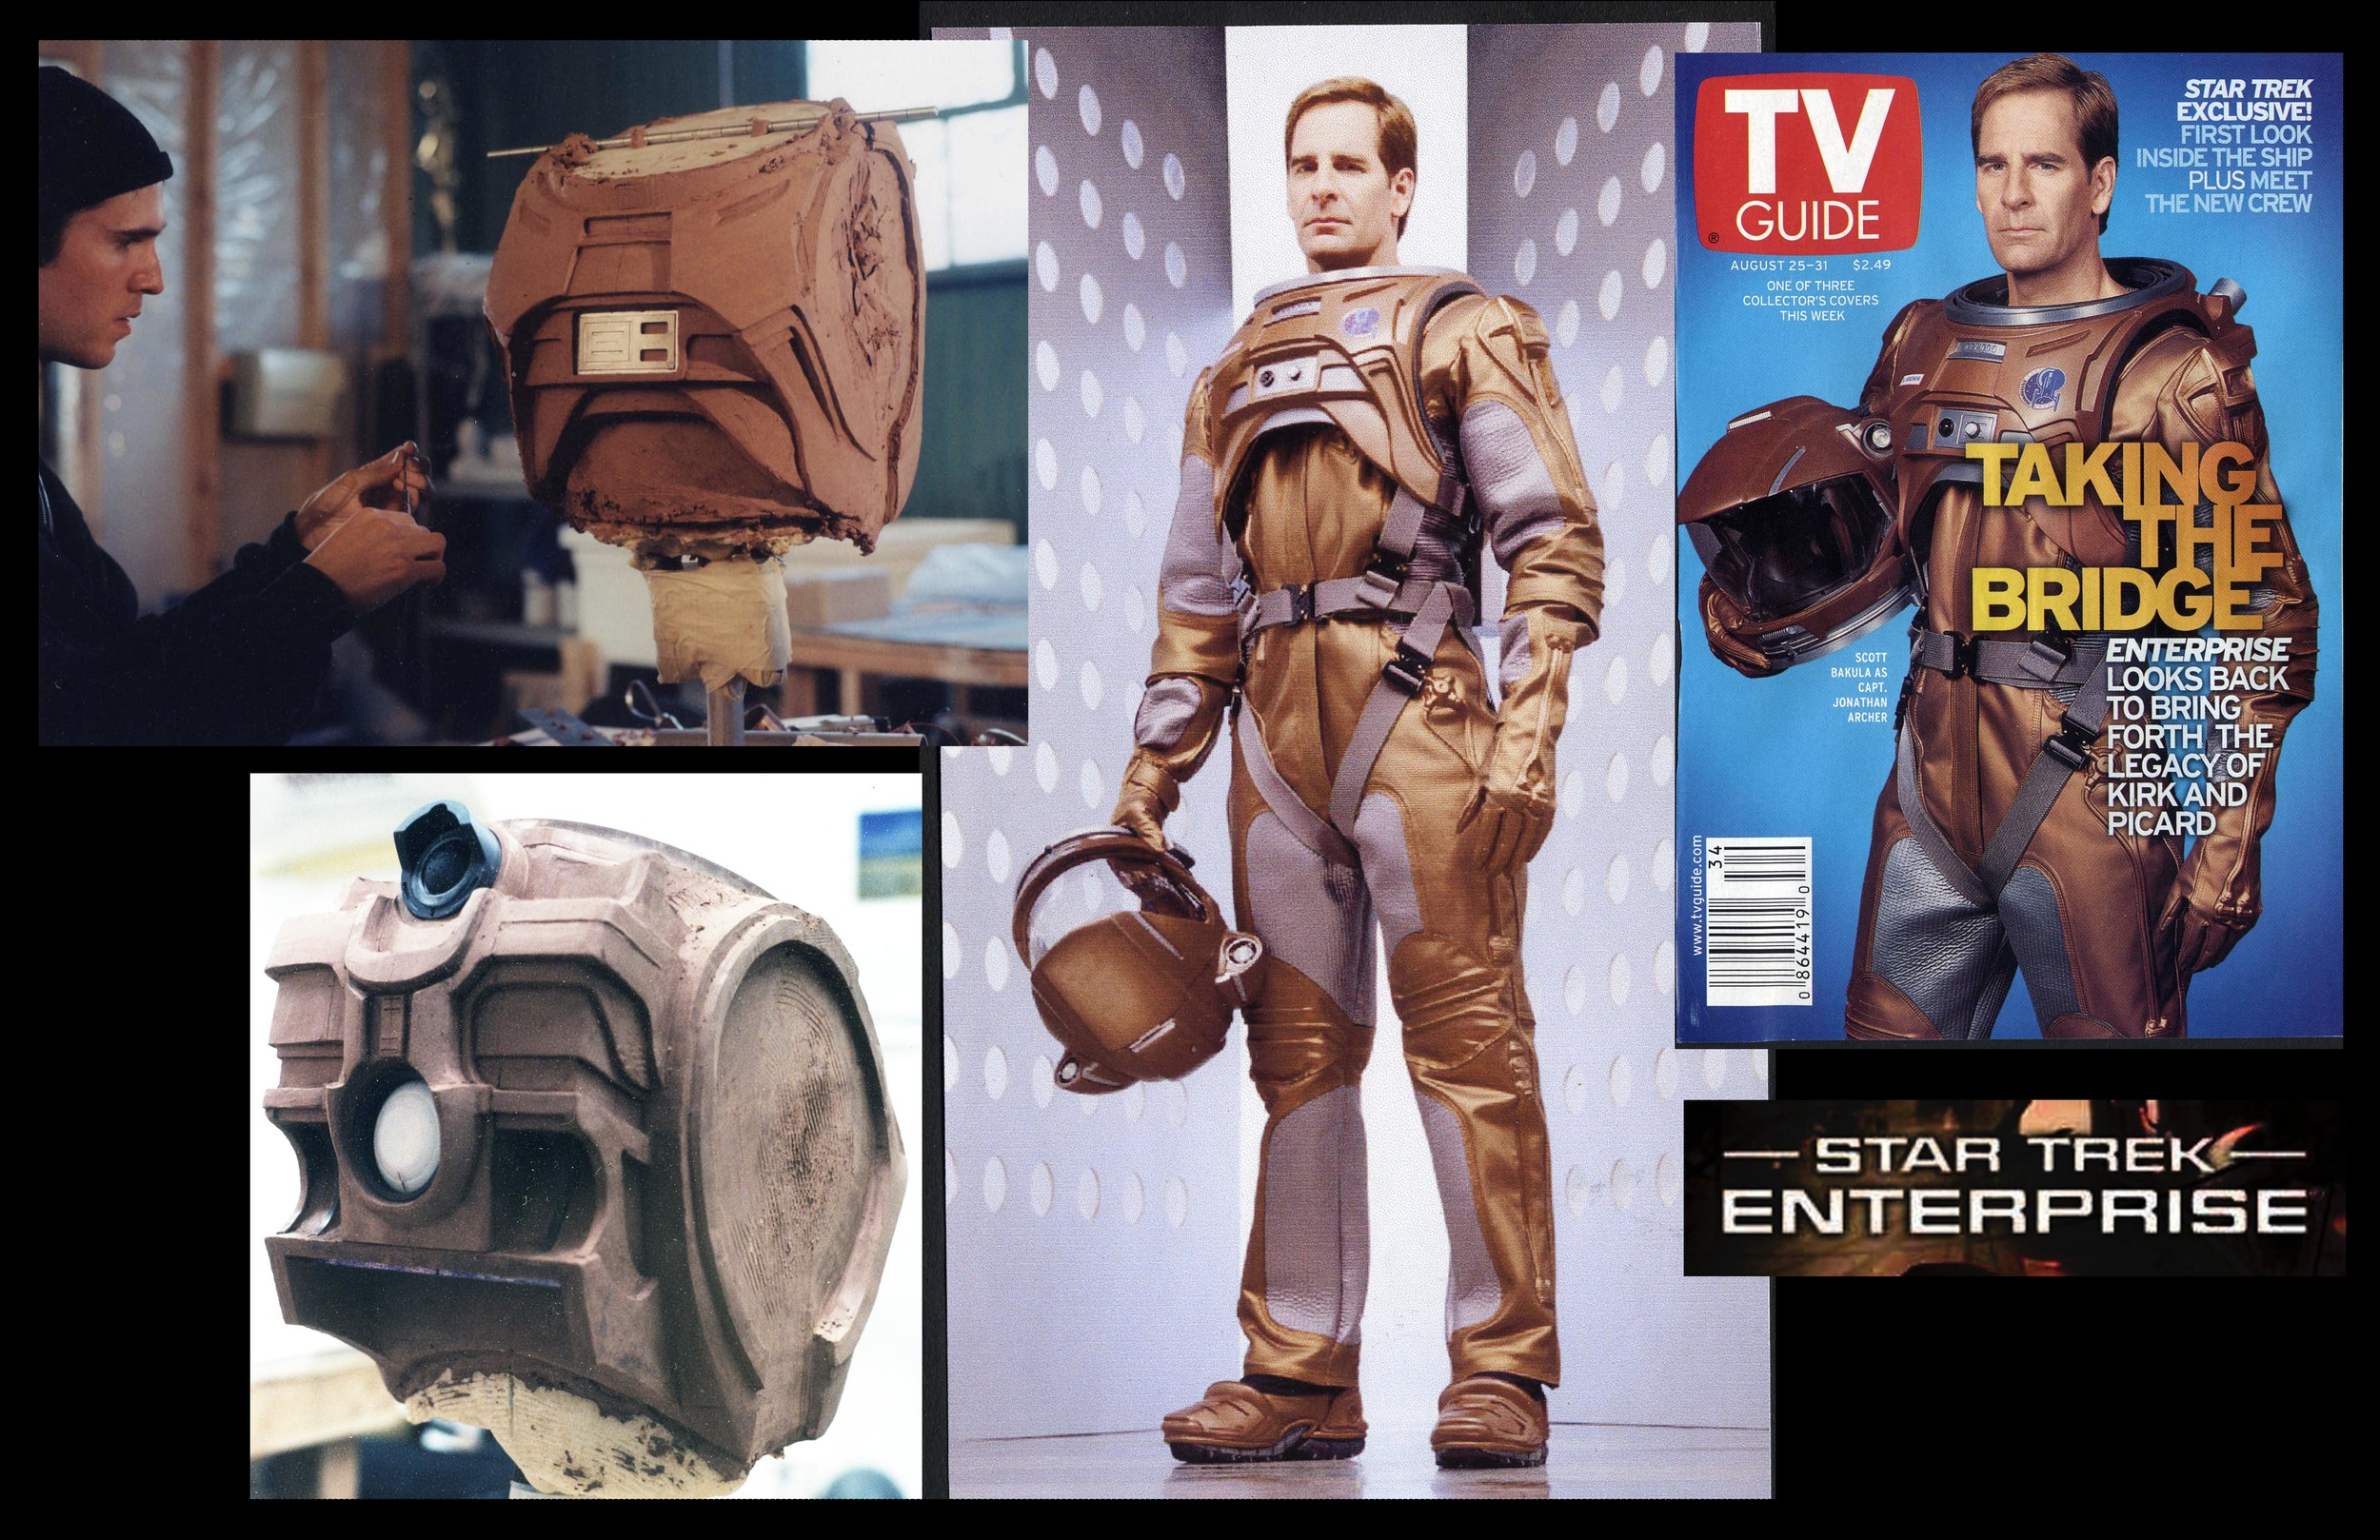 Sculptor for space suits |  Star Trek Enterprise | NEOTEK